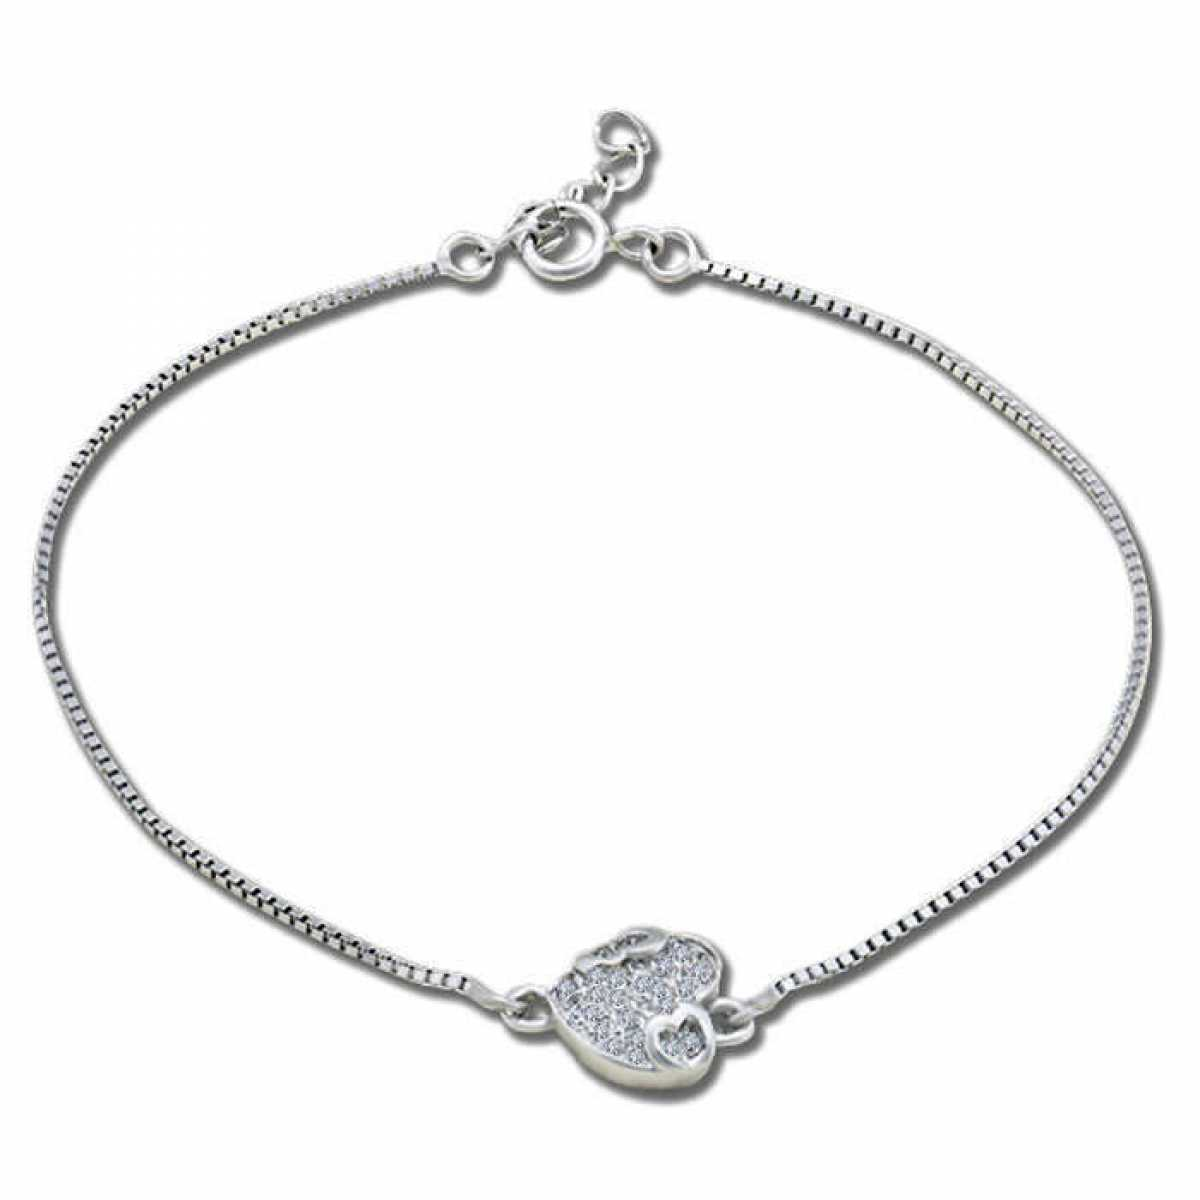 Silver Charm Bracelet With Heart